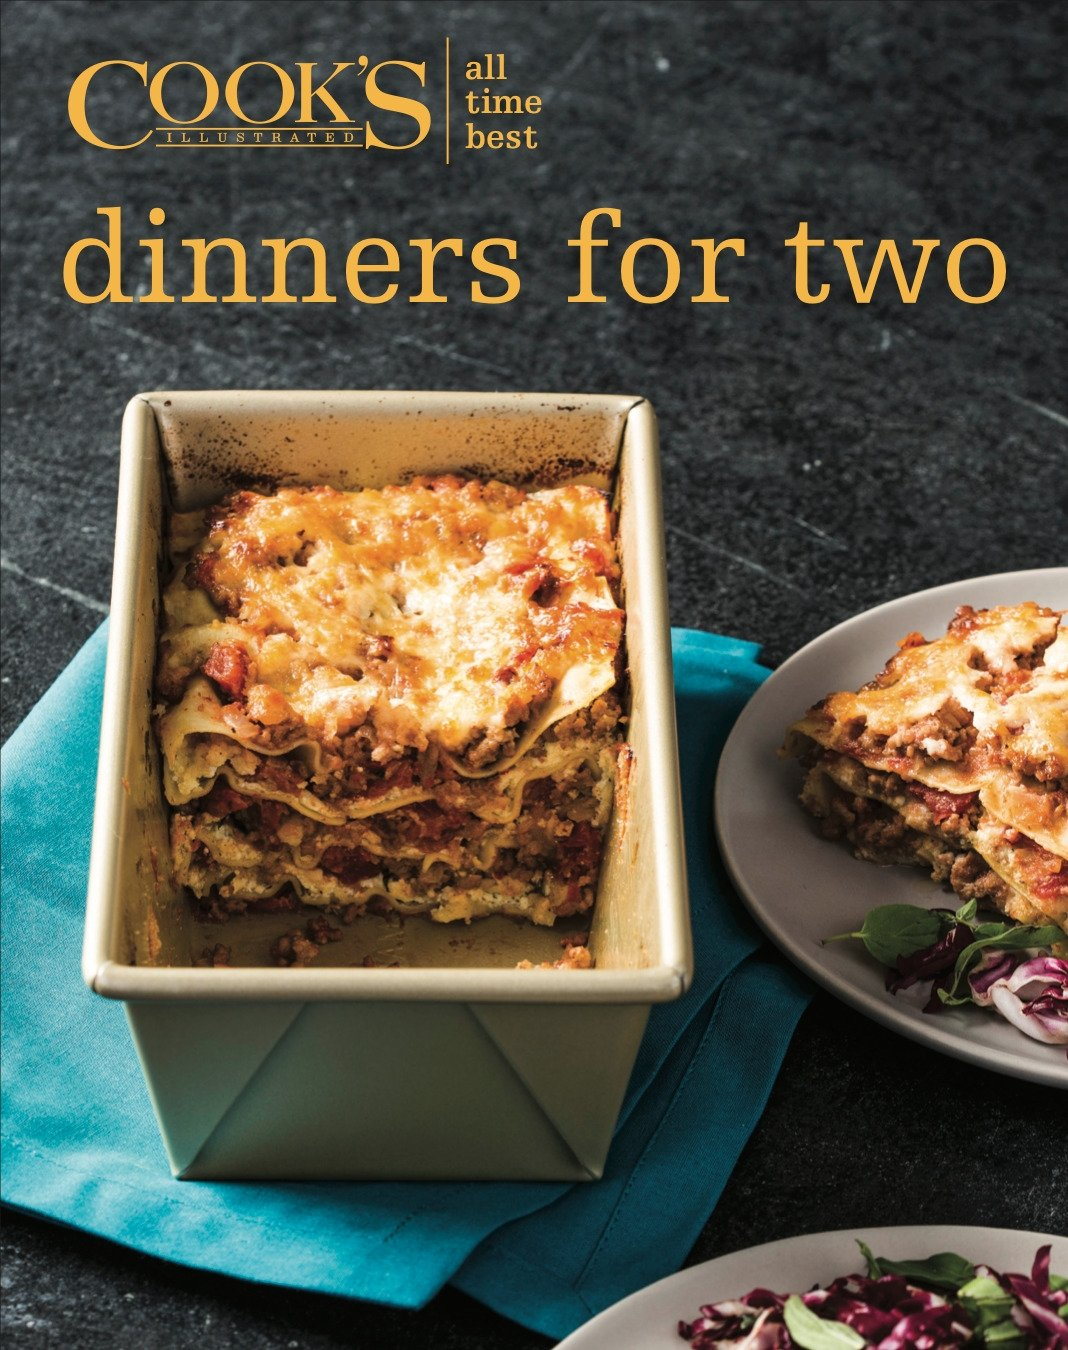 All Time Best Dinners For Two America S Test Kitchen 9781945256622 Amazon Com Books